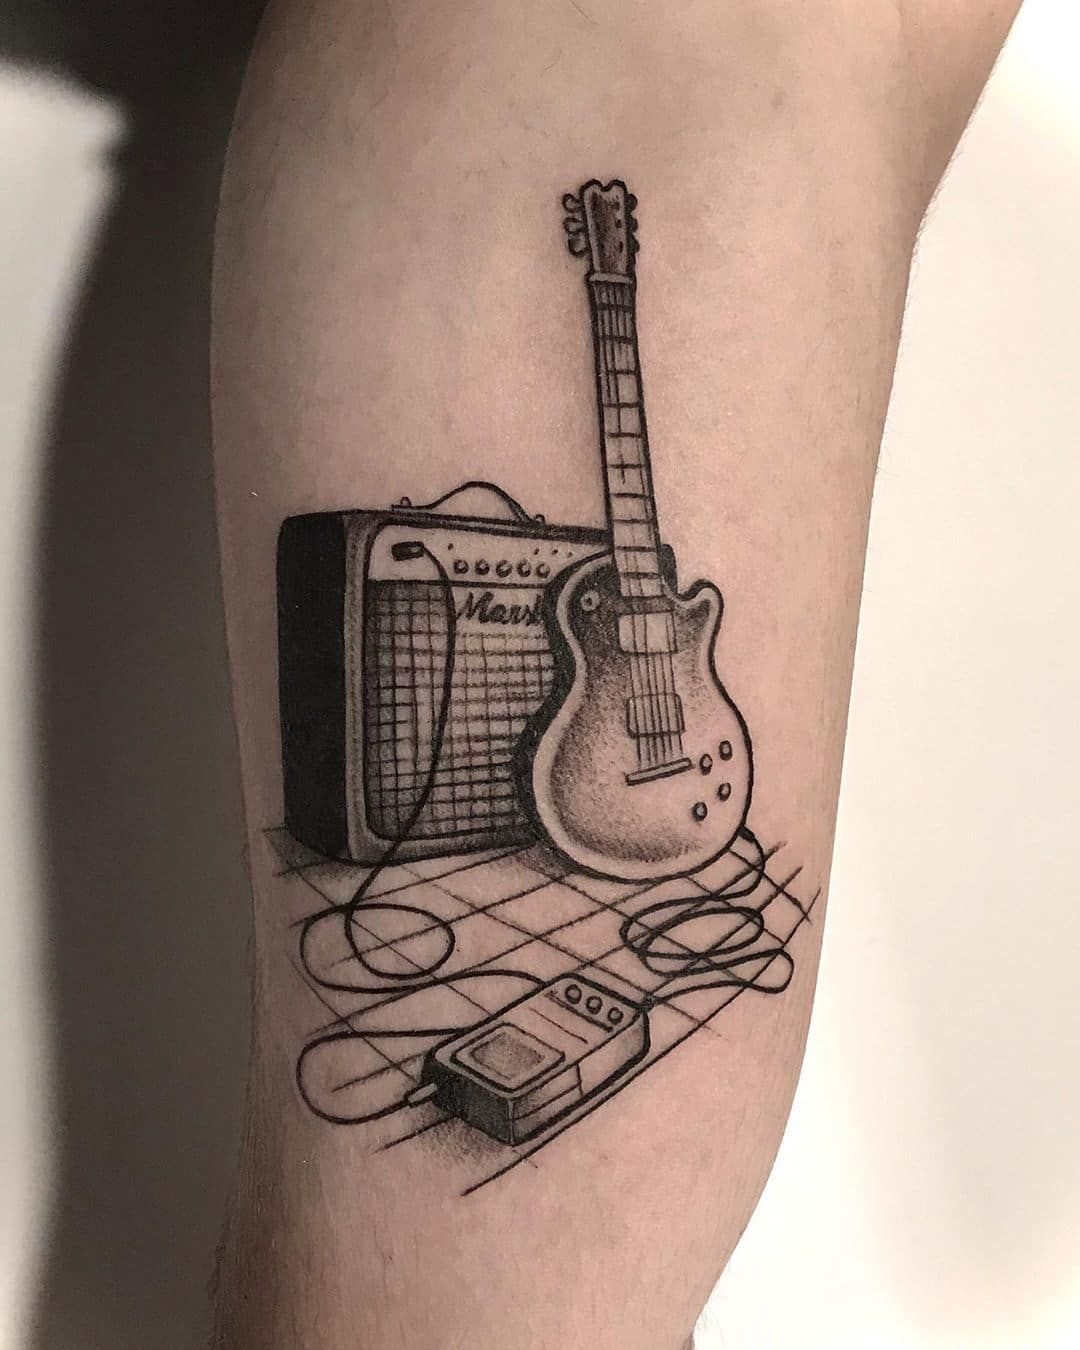 101 Awesome Guitar Tattoo Ideas You Need To See! in 2020